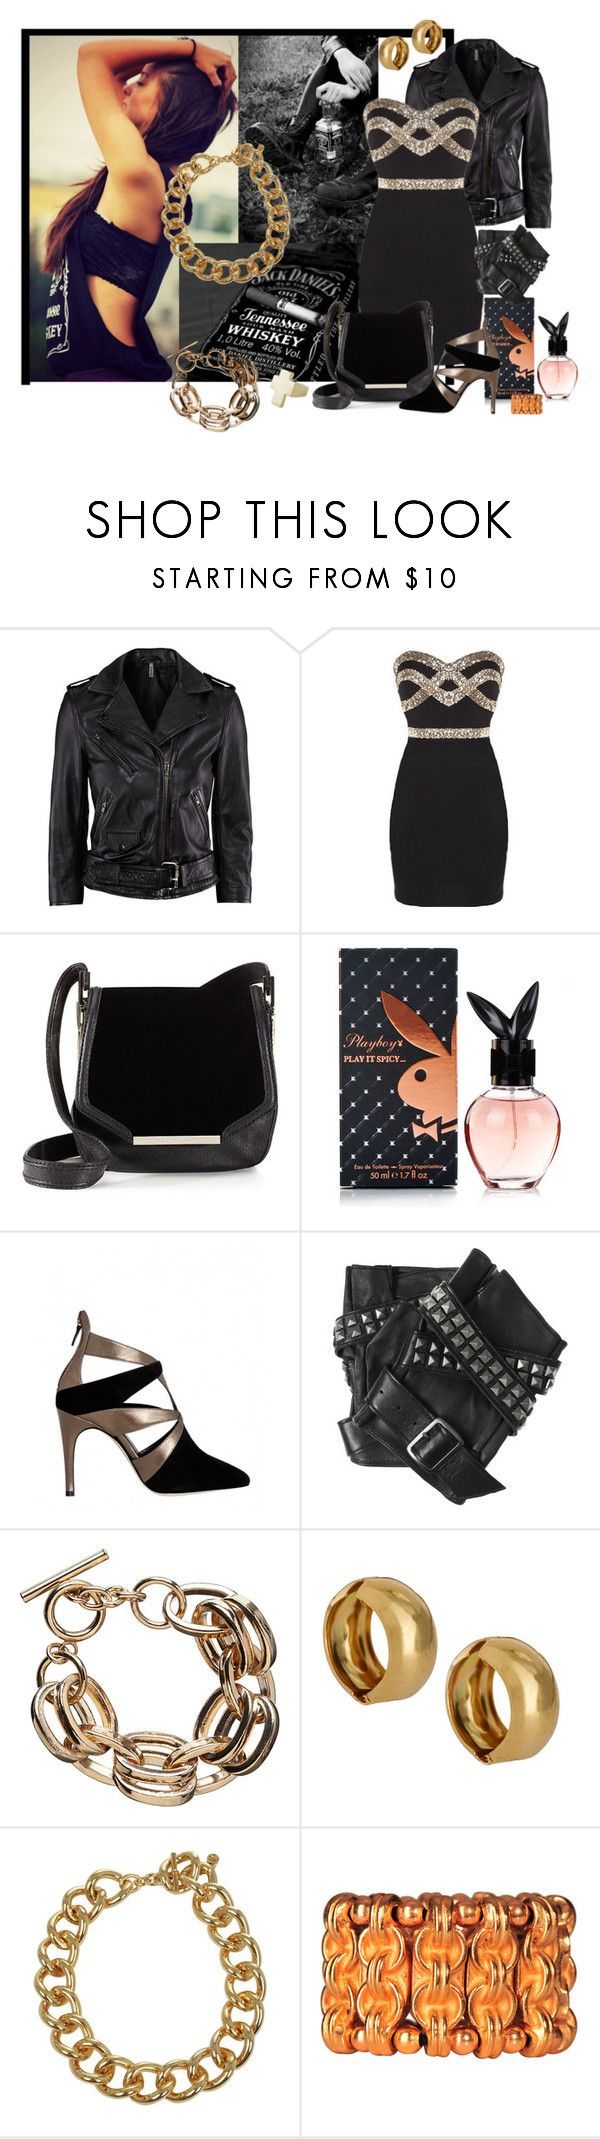 """""""Jack Fashion"""" by gregory-joseph ❤ liked on Polyvore featuring H&M, Juicy Couture, Alejandro Ingelmo, Karl Lagerfeld, Gogo Philip, Michael Kors, Philippe Audibert, Crafted and jack daniels"""